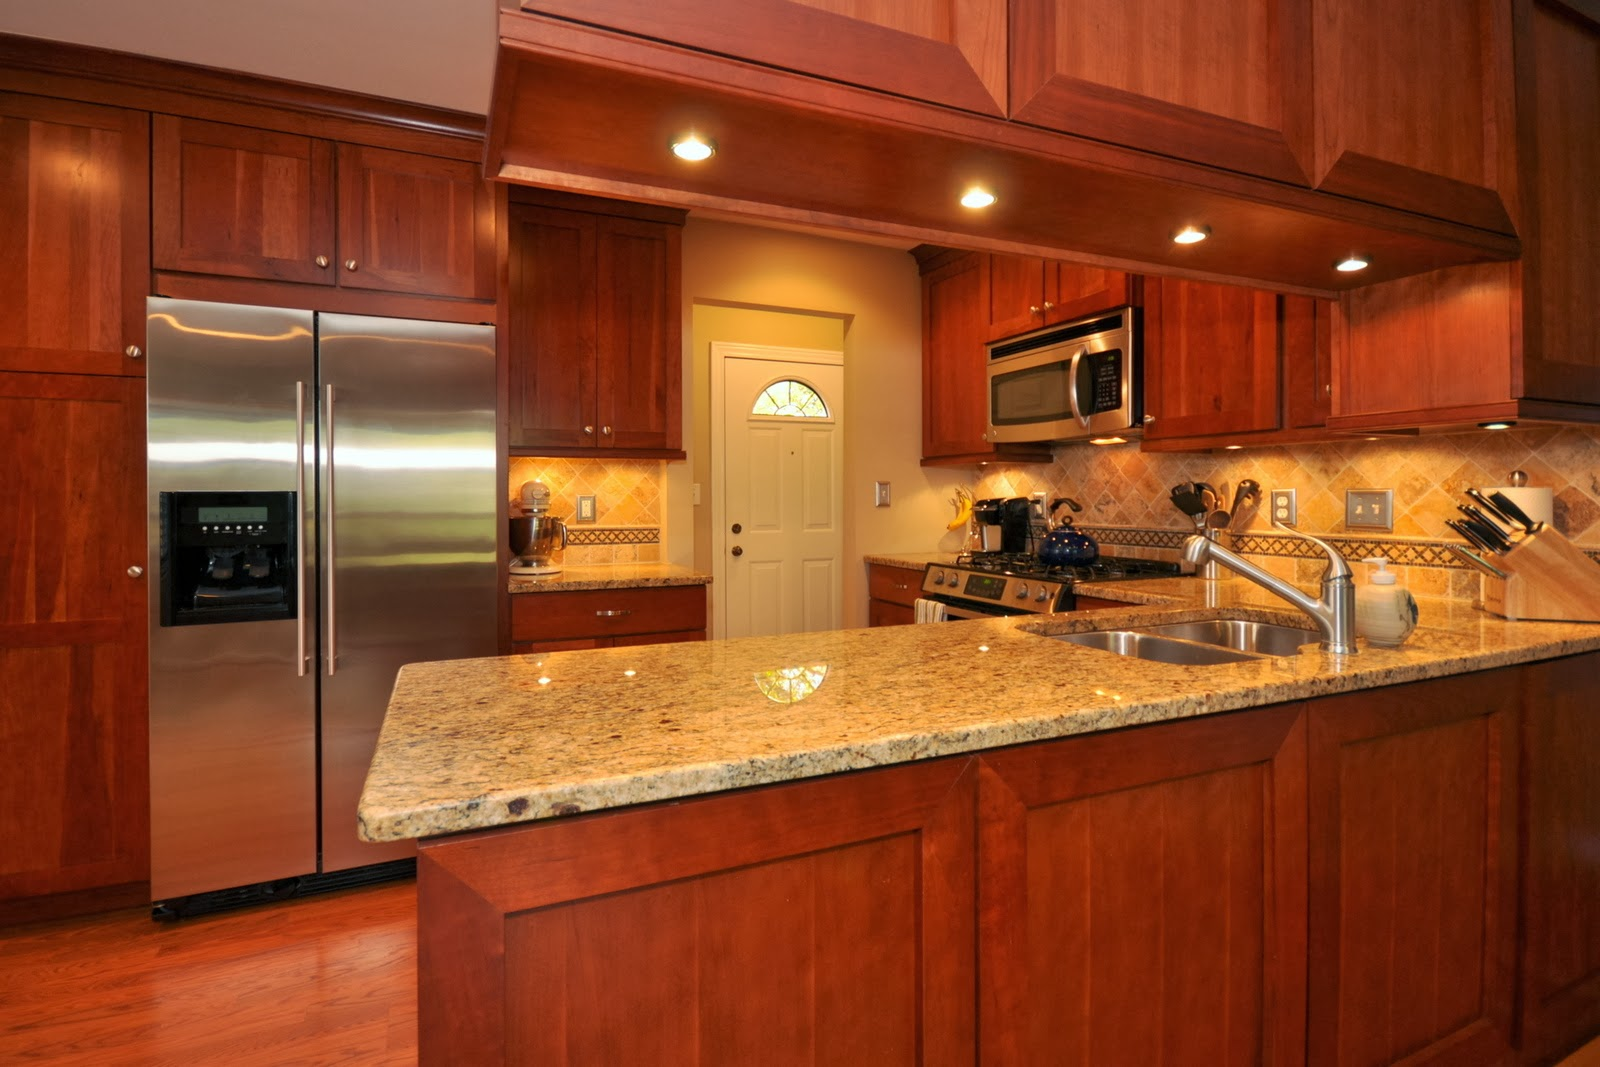 Updated Kitchens Prepossessing With Updated Kitchens 2013 Images